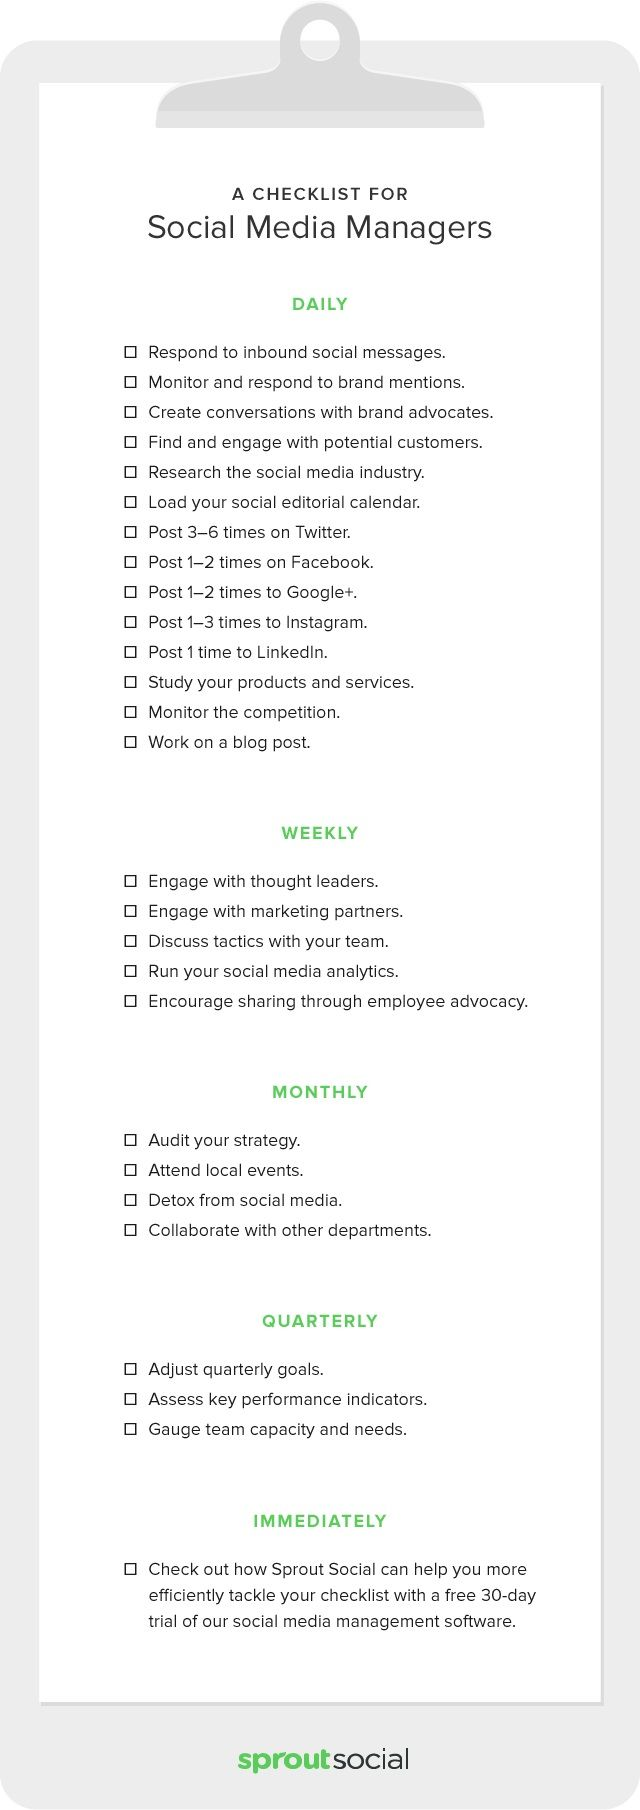 A Daily, Weekly, Monthly Social Media Checklist | Project place